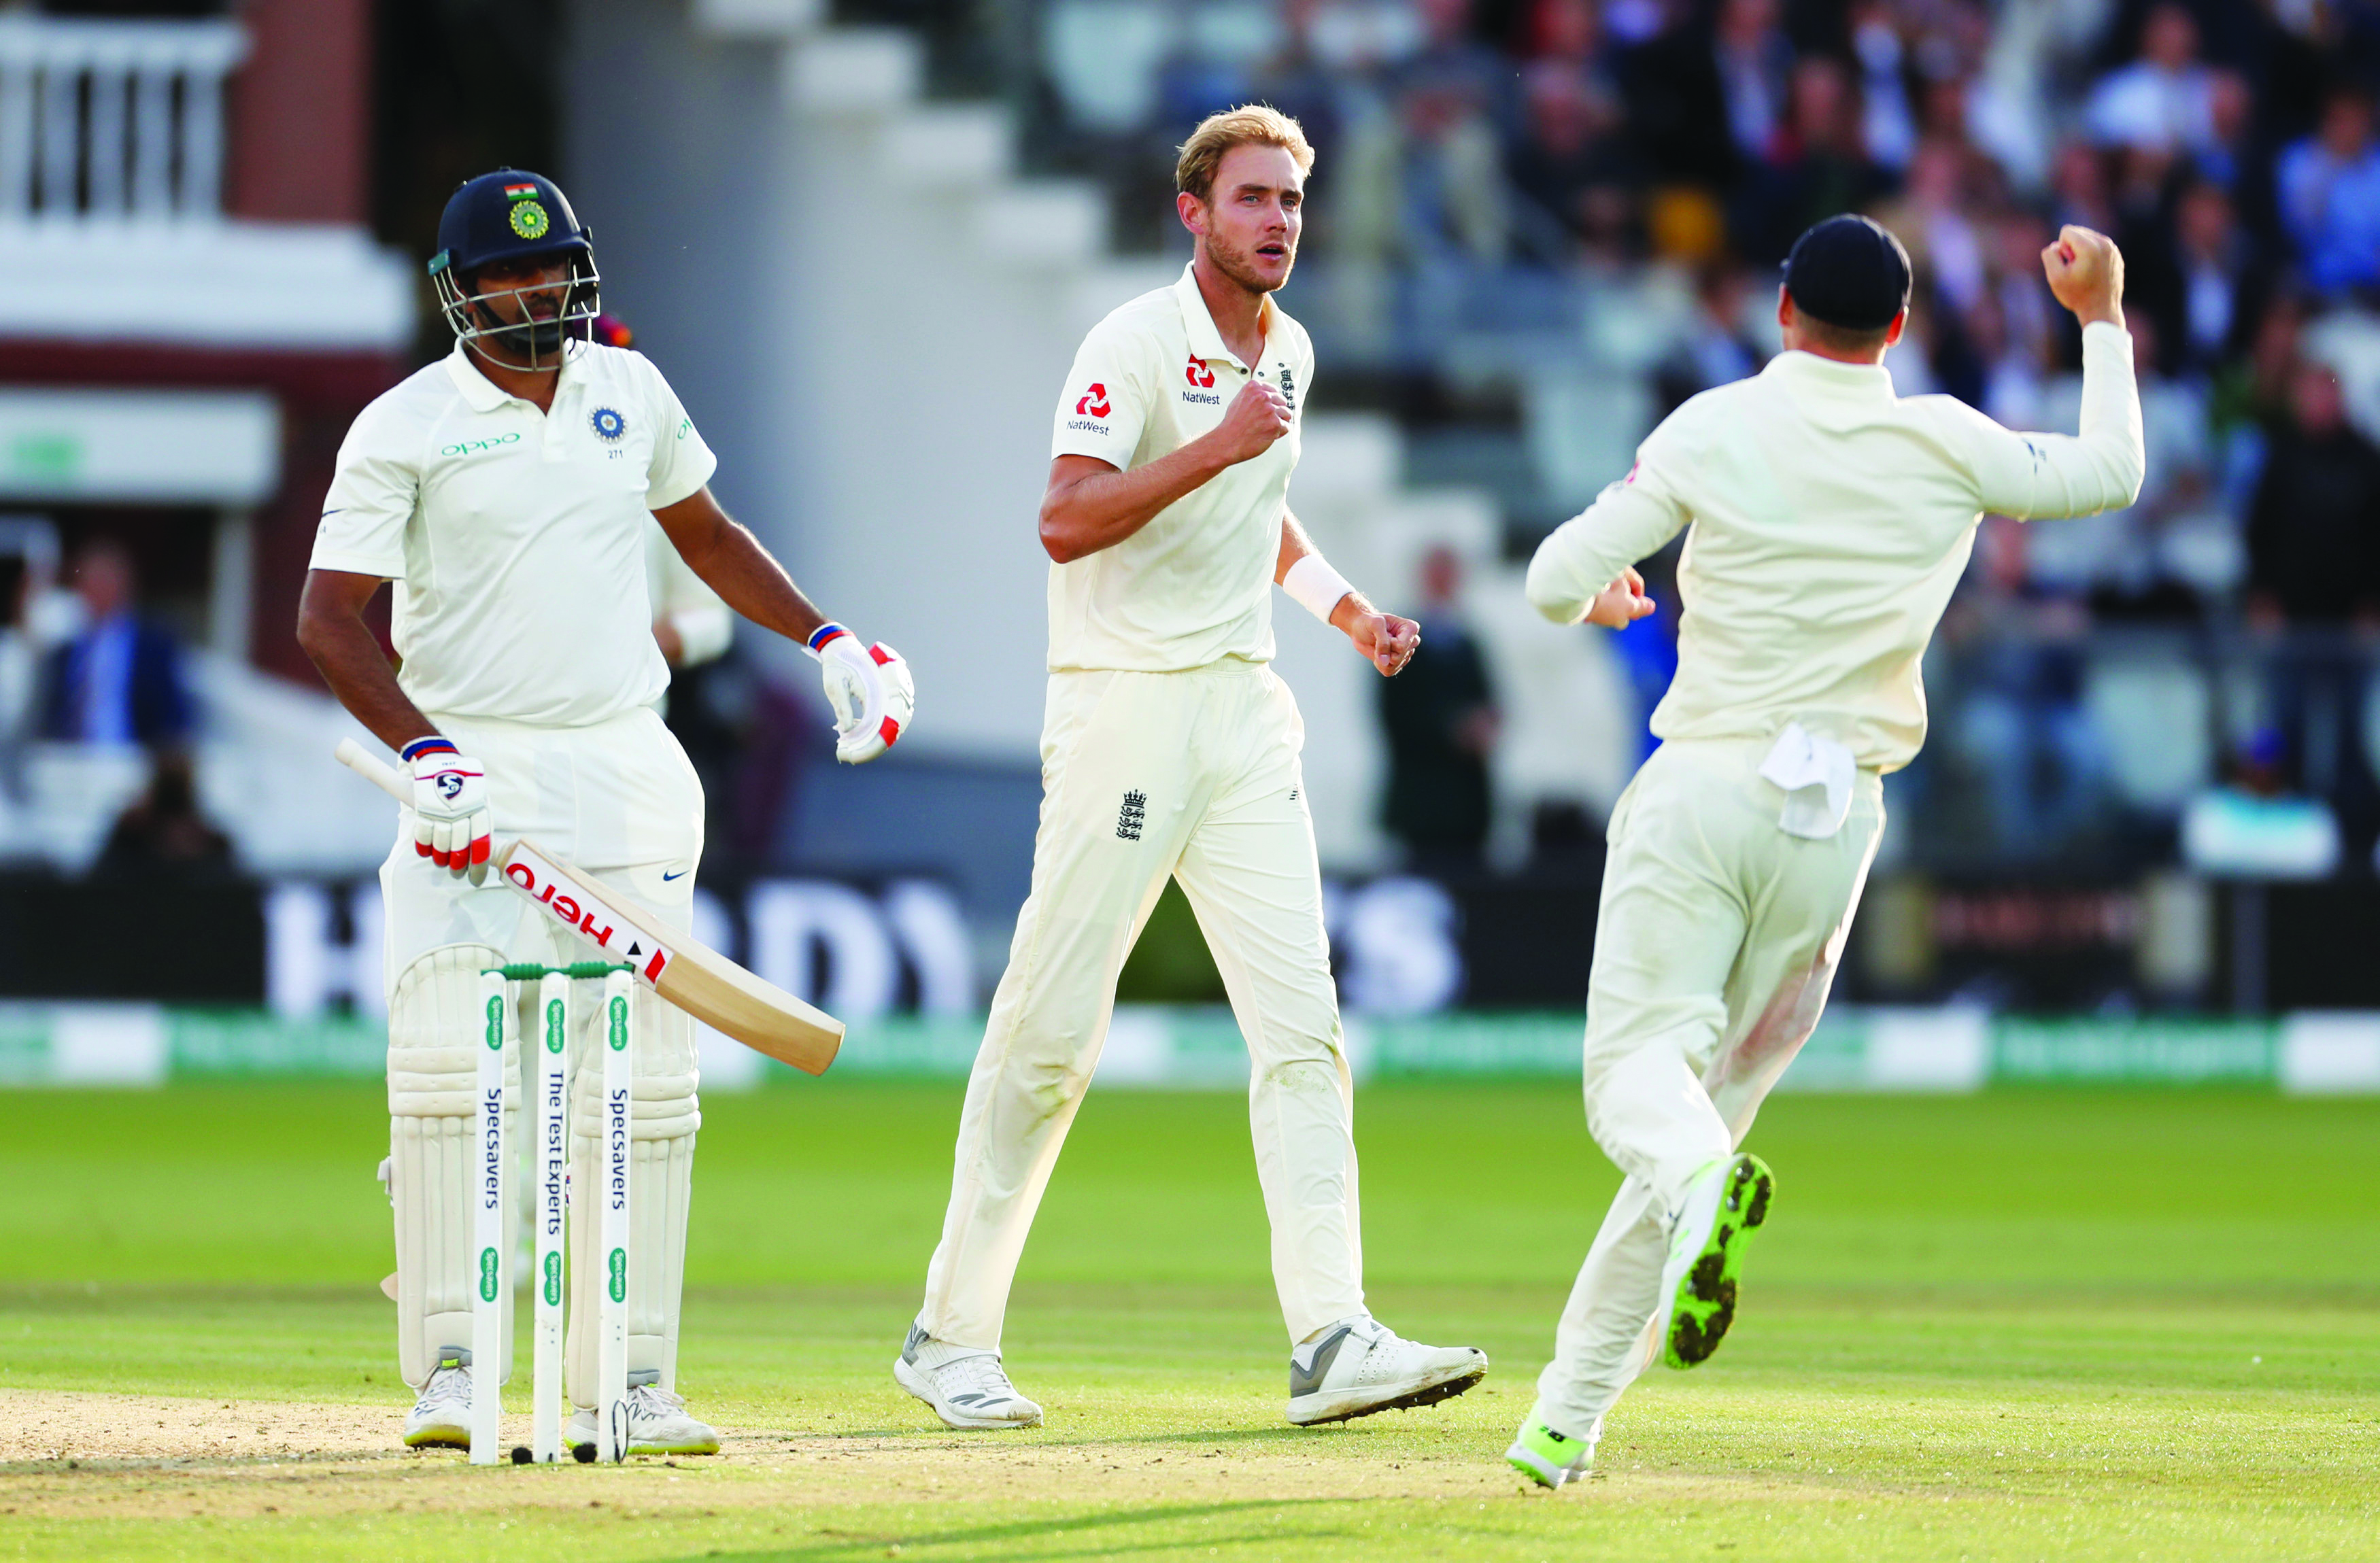 Cricket: Broad propels England to victory over India